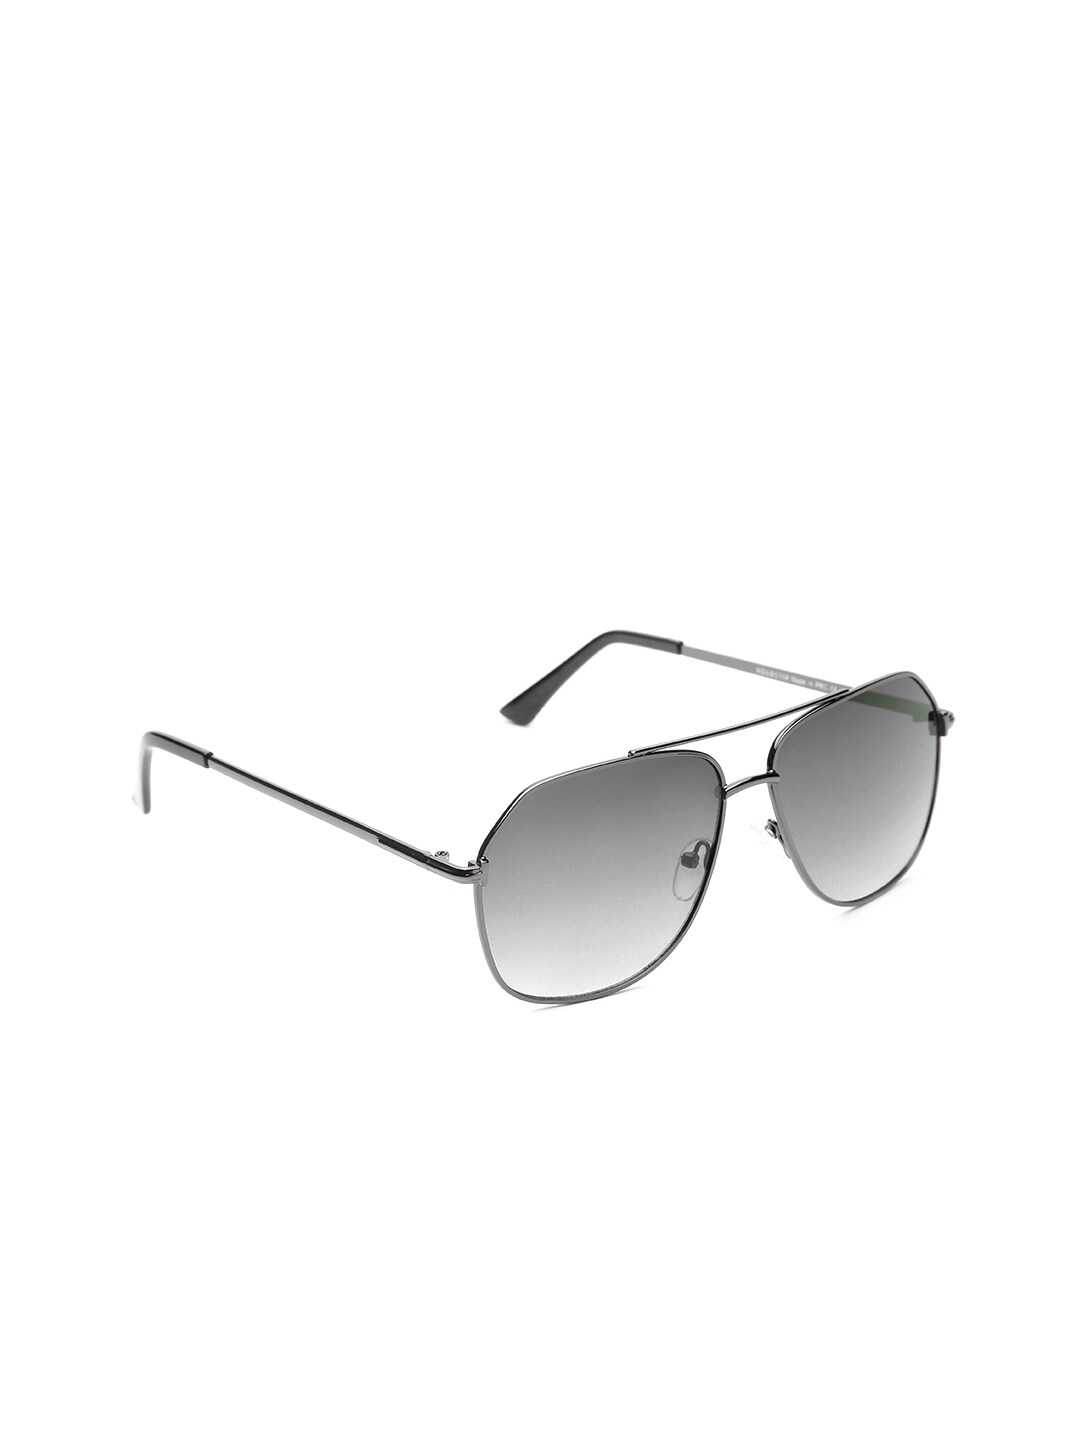 a3f127fcb Sunglasses - Buy Shades for Men and Women Online in India